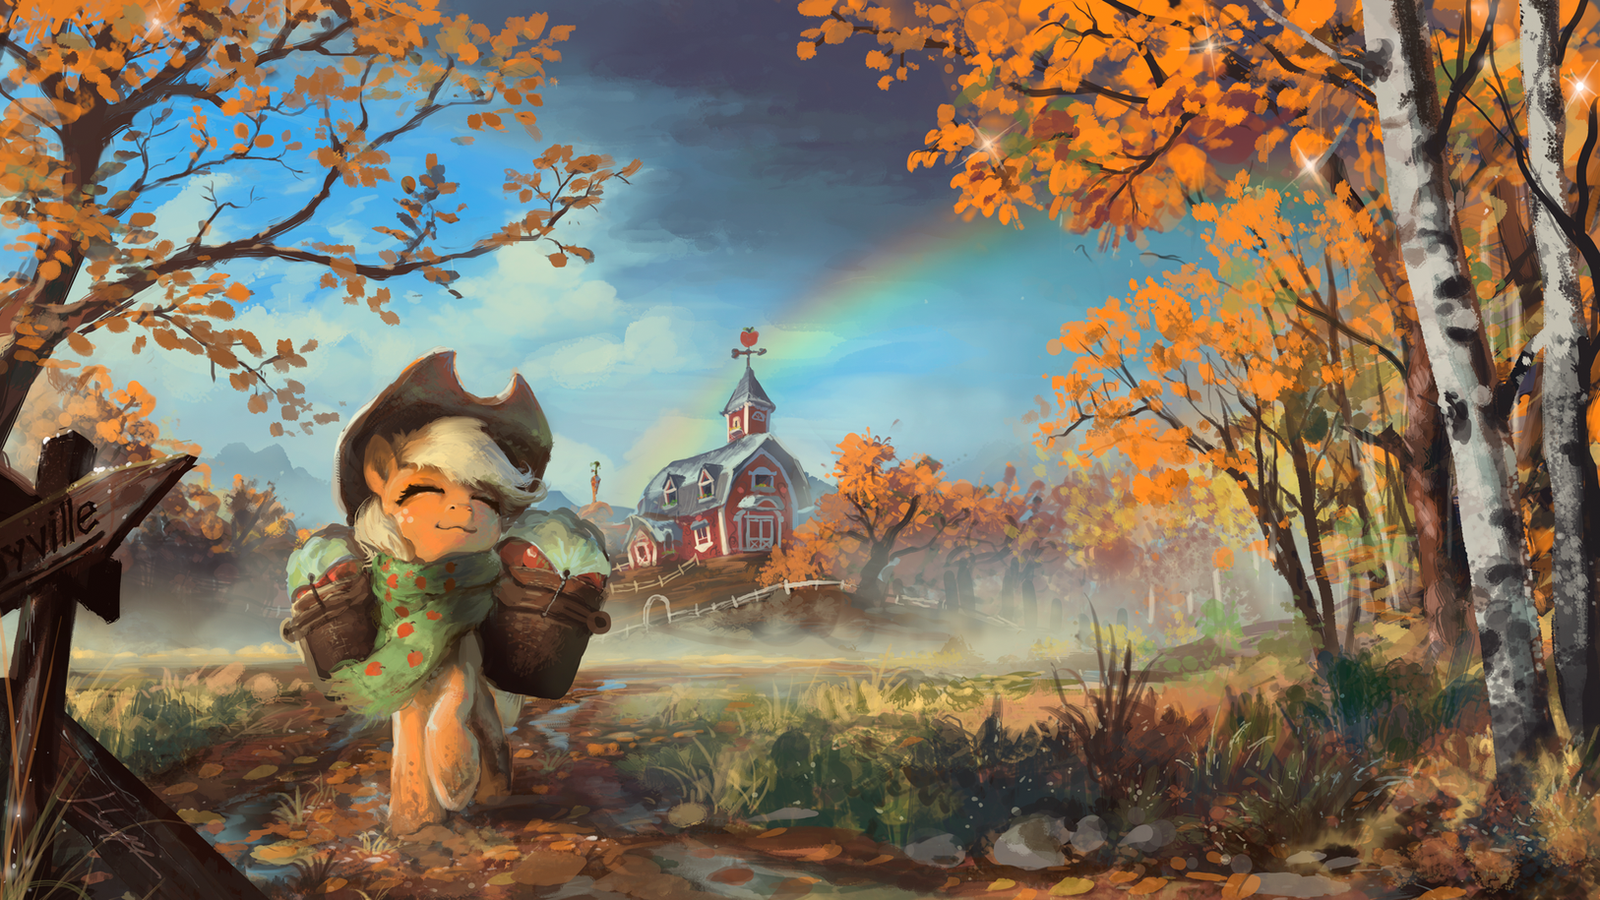 The Last Apples of Autumn by Huussii